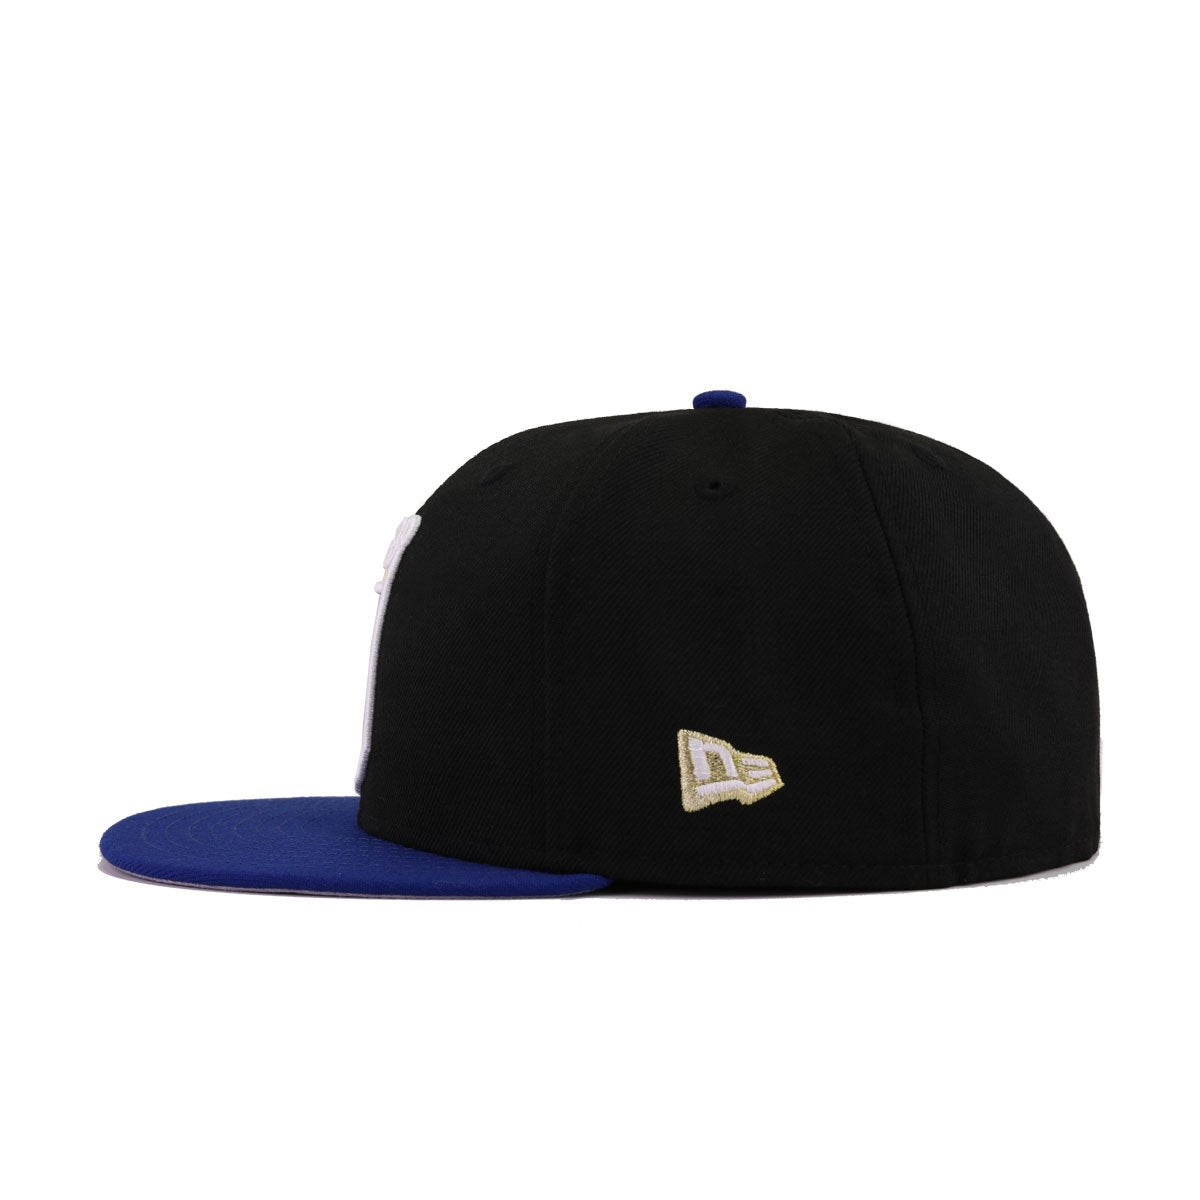 Kansas City Royals Black Light Royal Blue 40th Anniversary New Era 59Fifty Fitted